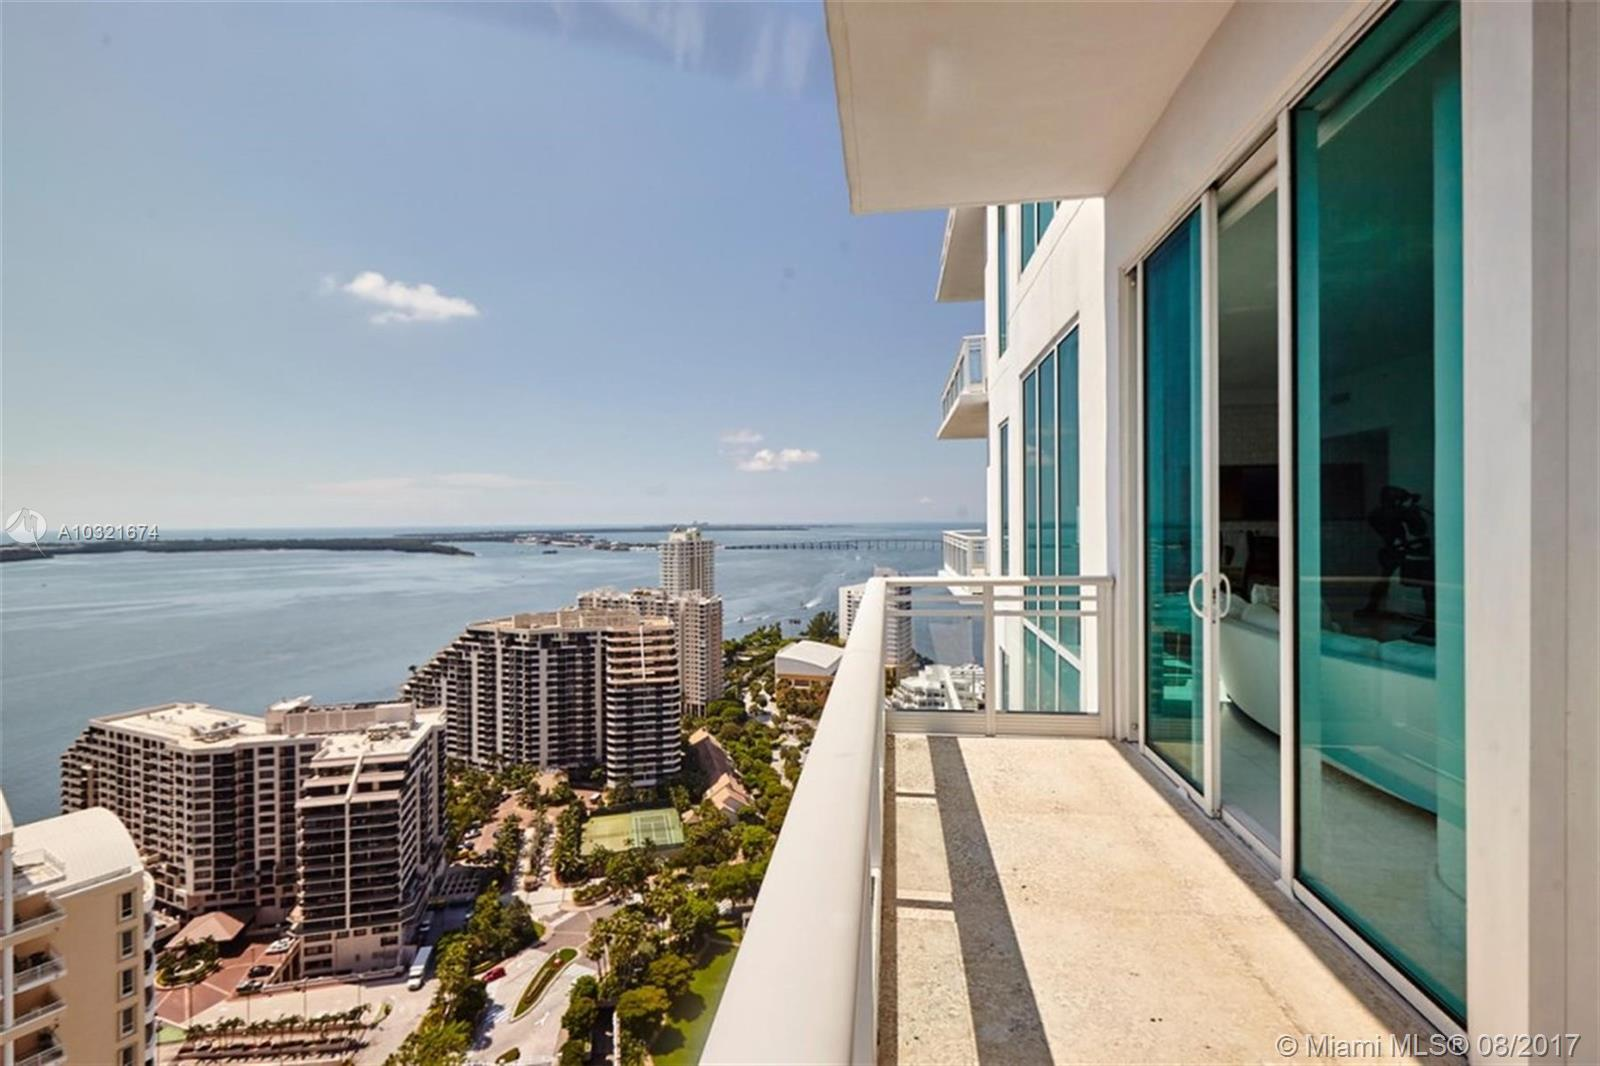 *3 parking spaces!* This spectacular residence in the sky features 12 foot ceilings, private elevator access and marble floors throughout. Asia is Brickell Key's most luxurious building. Breathtaking views from every room on this 28th floor unit. Four bedrooms, five and a half bathroom unit plus maid's rooms and media room.